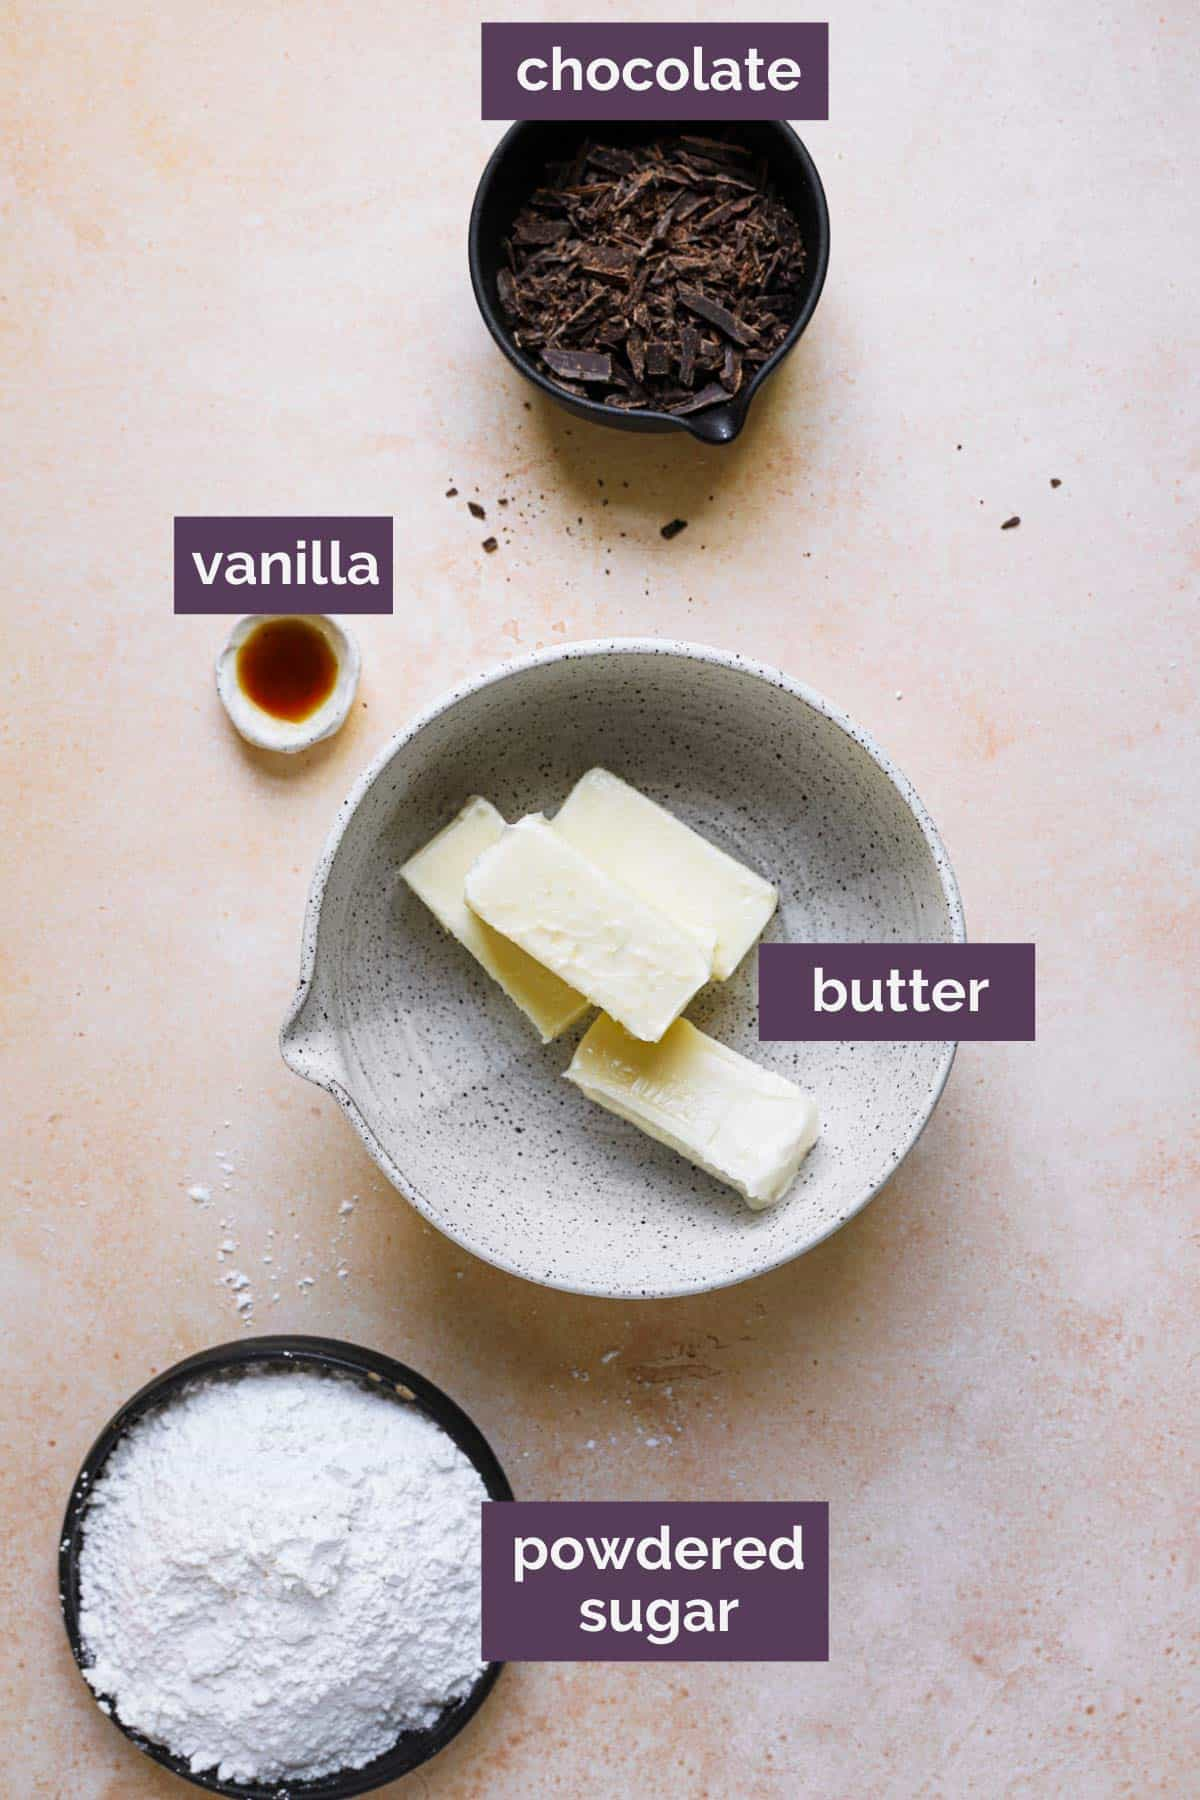 A top down photo of the ingredients for chocolate cake frosting with purple labels.